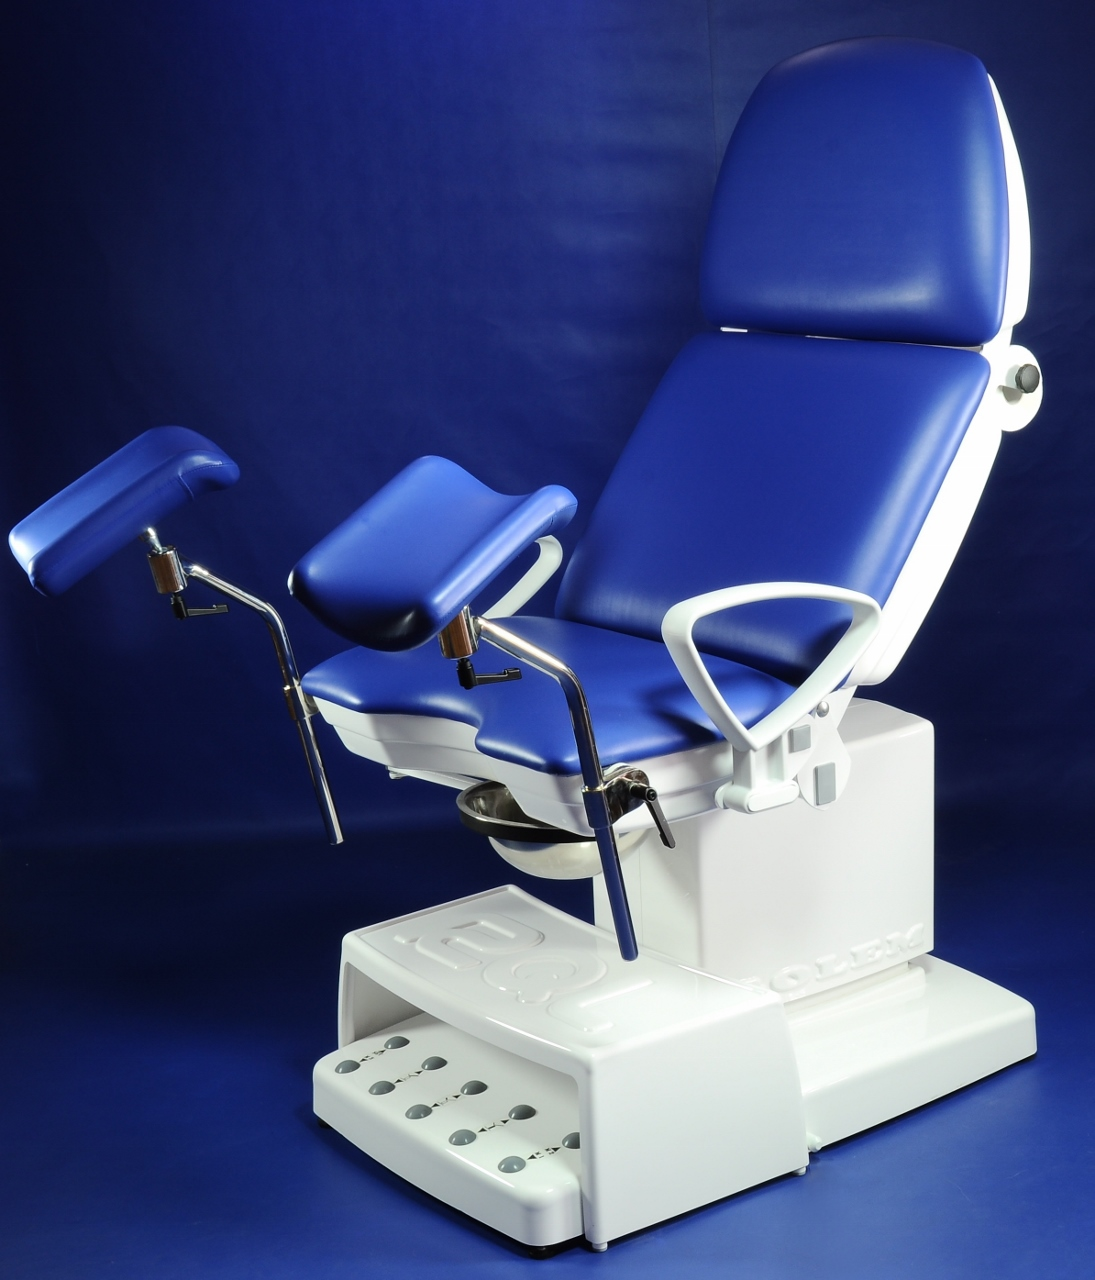 RQL s.r.o. - GOLEM 6ET – EXAMINING chair for gynaecology and urology